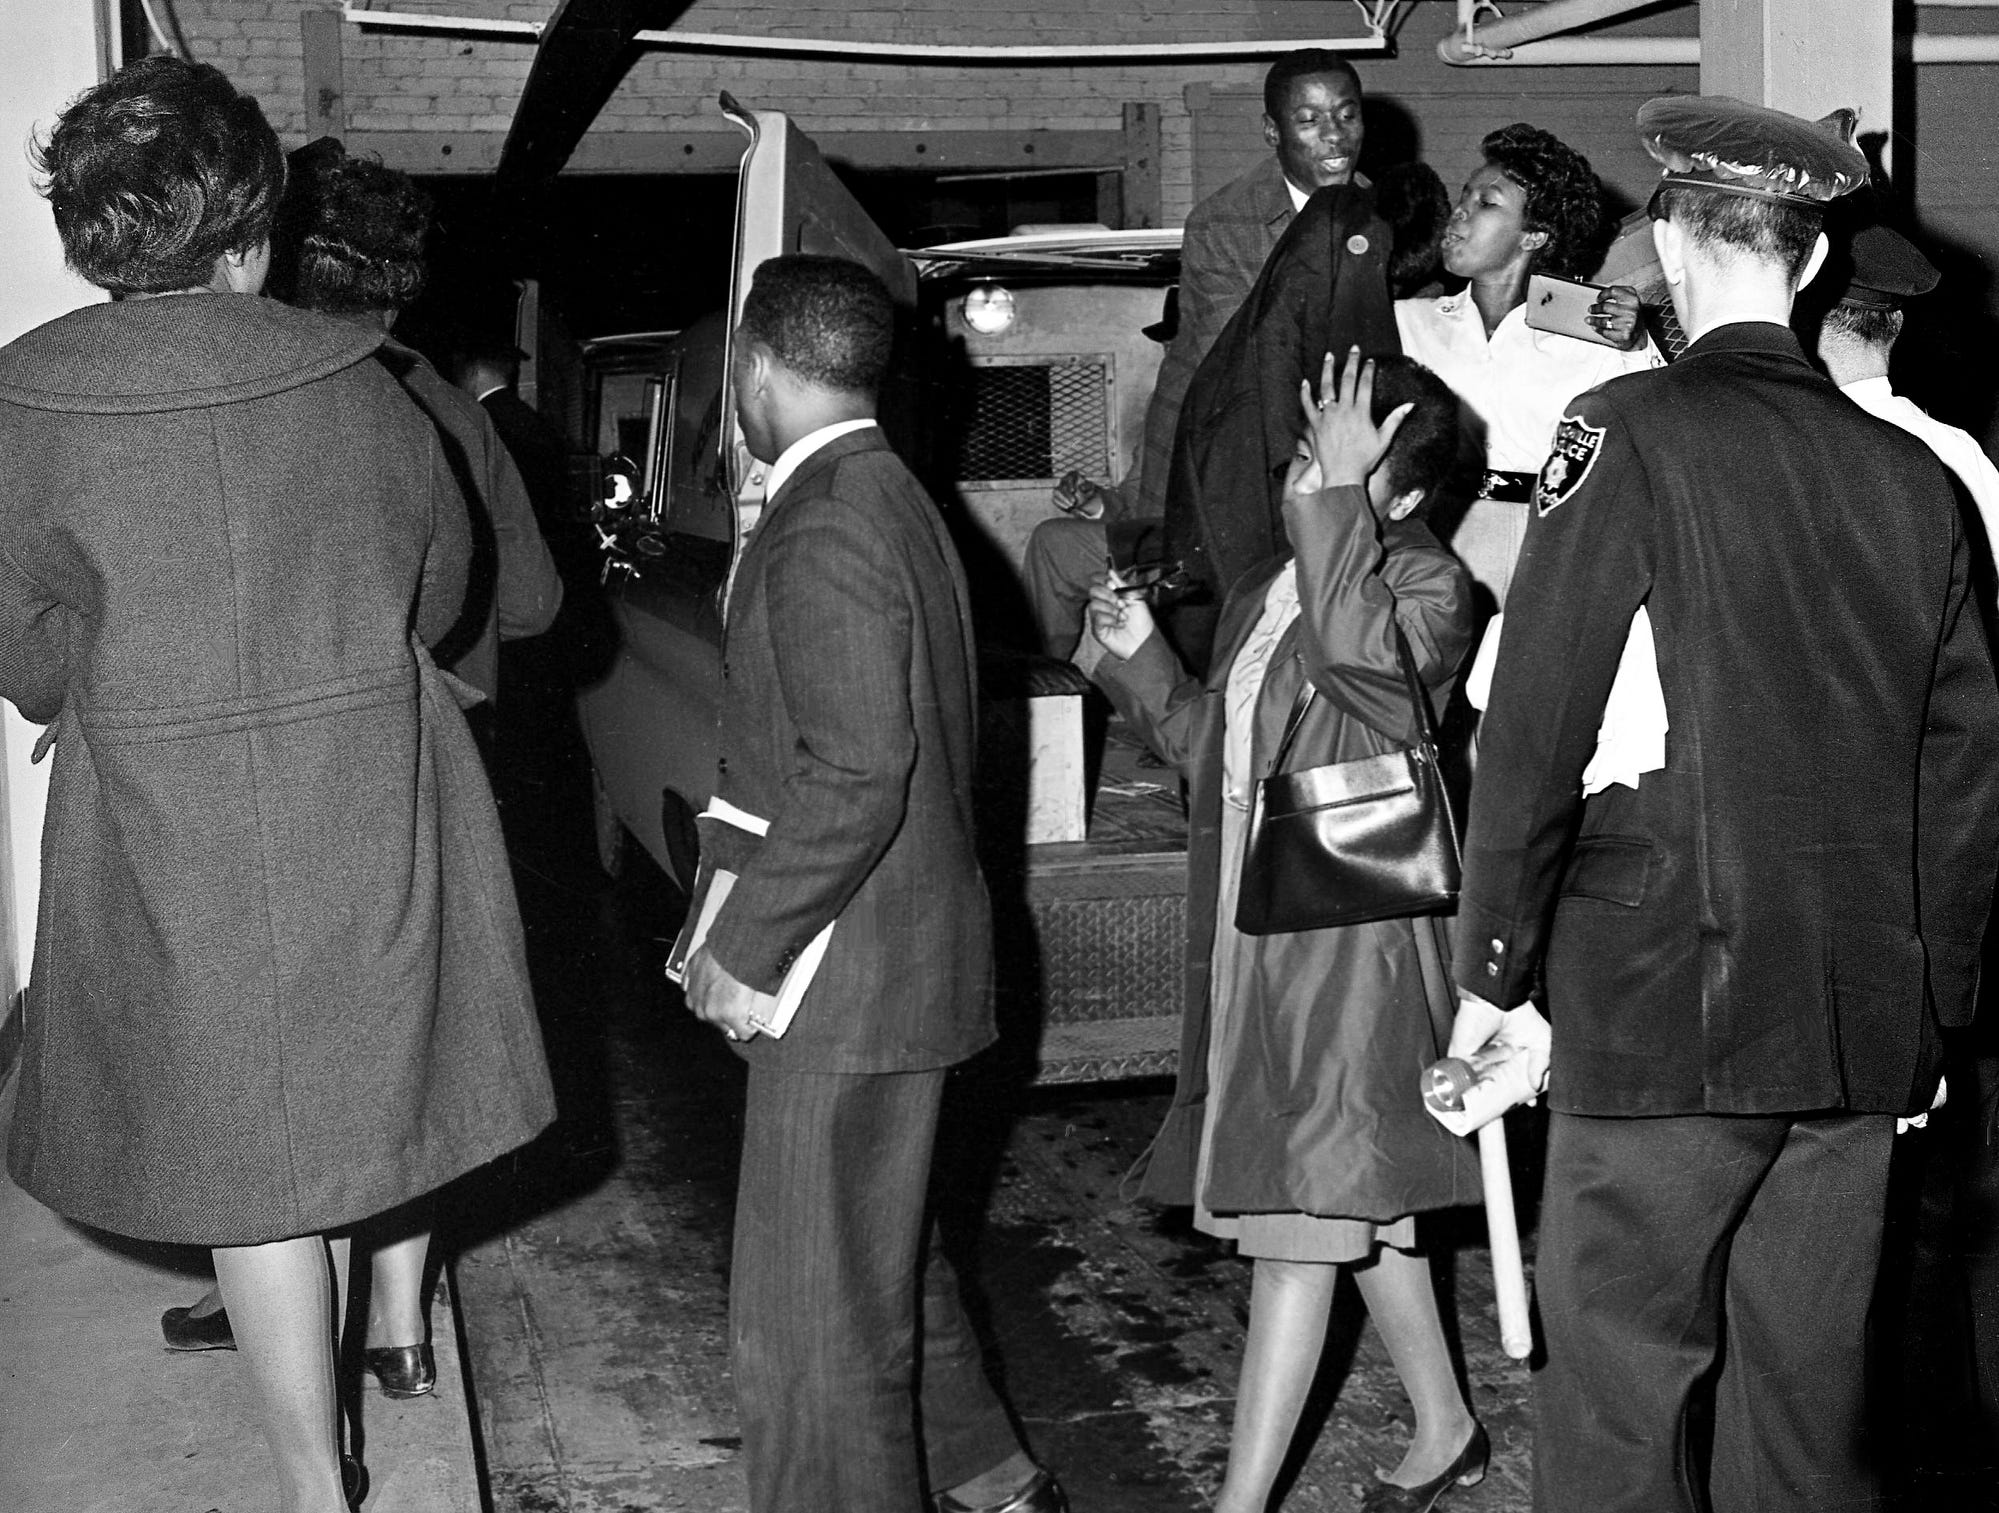 Black demonstrators sing hymns as they unload from a Nashville police van after their arrest March 4, 1963, when the group staged a large-scale sit-in at the segregated Cross Keys Restaurant in downtown Nashville. It was the largest assault on downtown Nashville segregation since 1960. The group gained entrance to the restaurant, and officers arrested and dragged the demonstrators out after their orders to leave were refused.